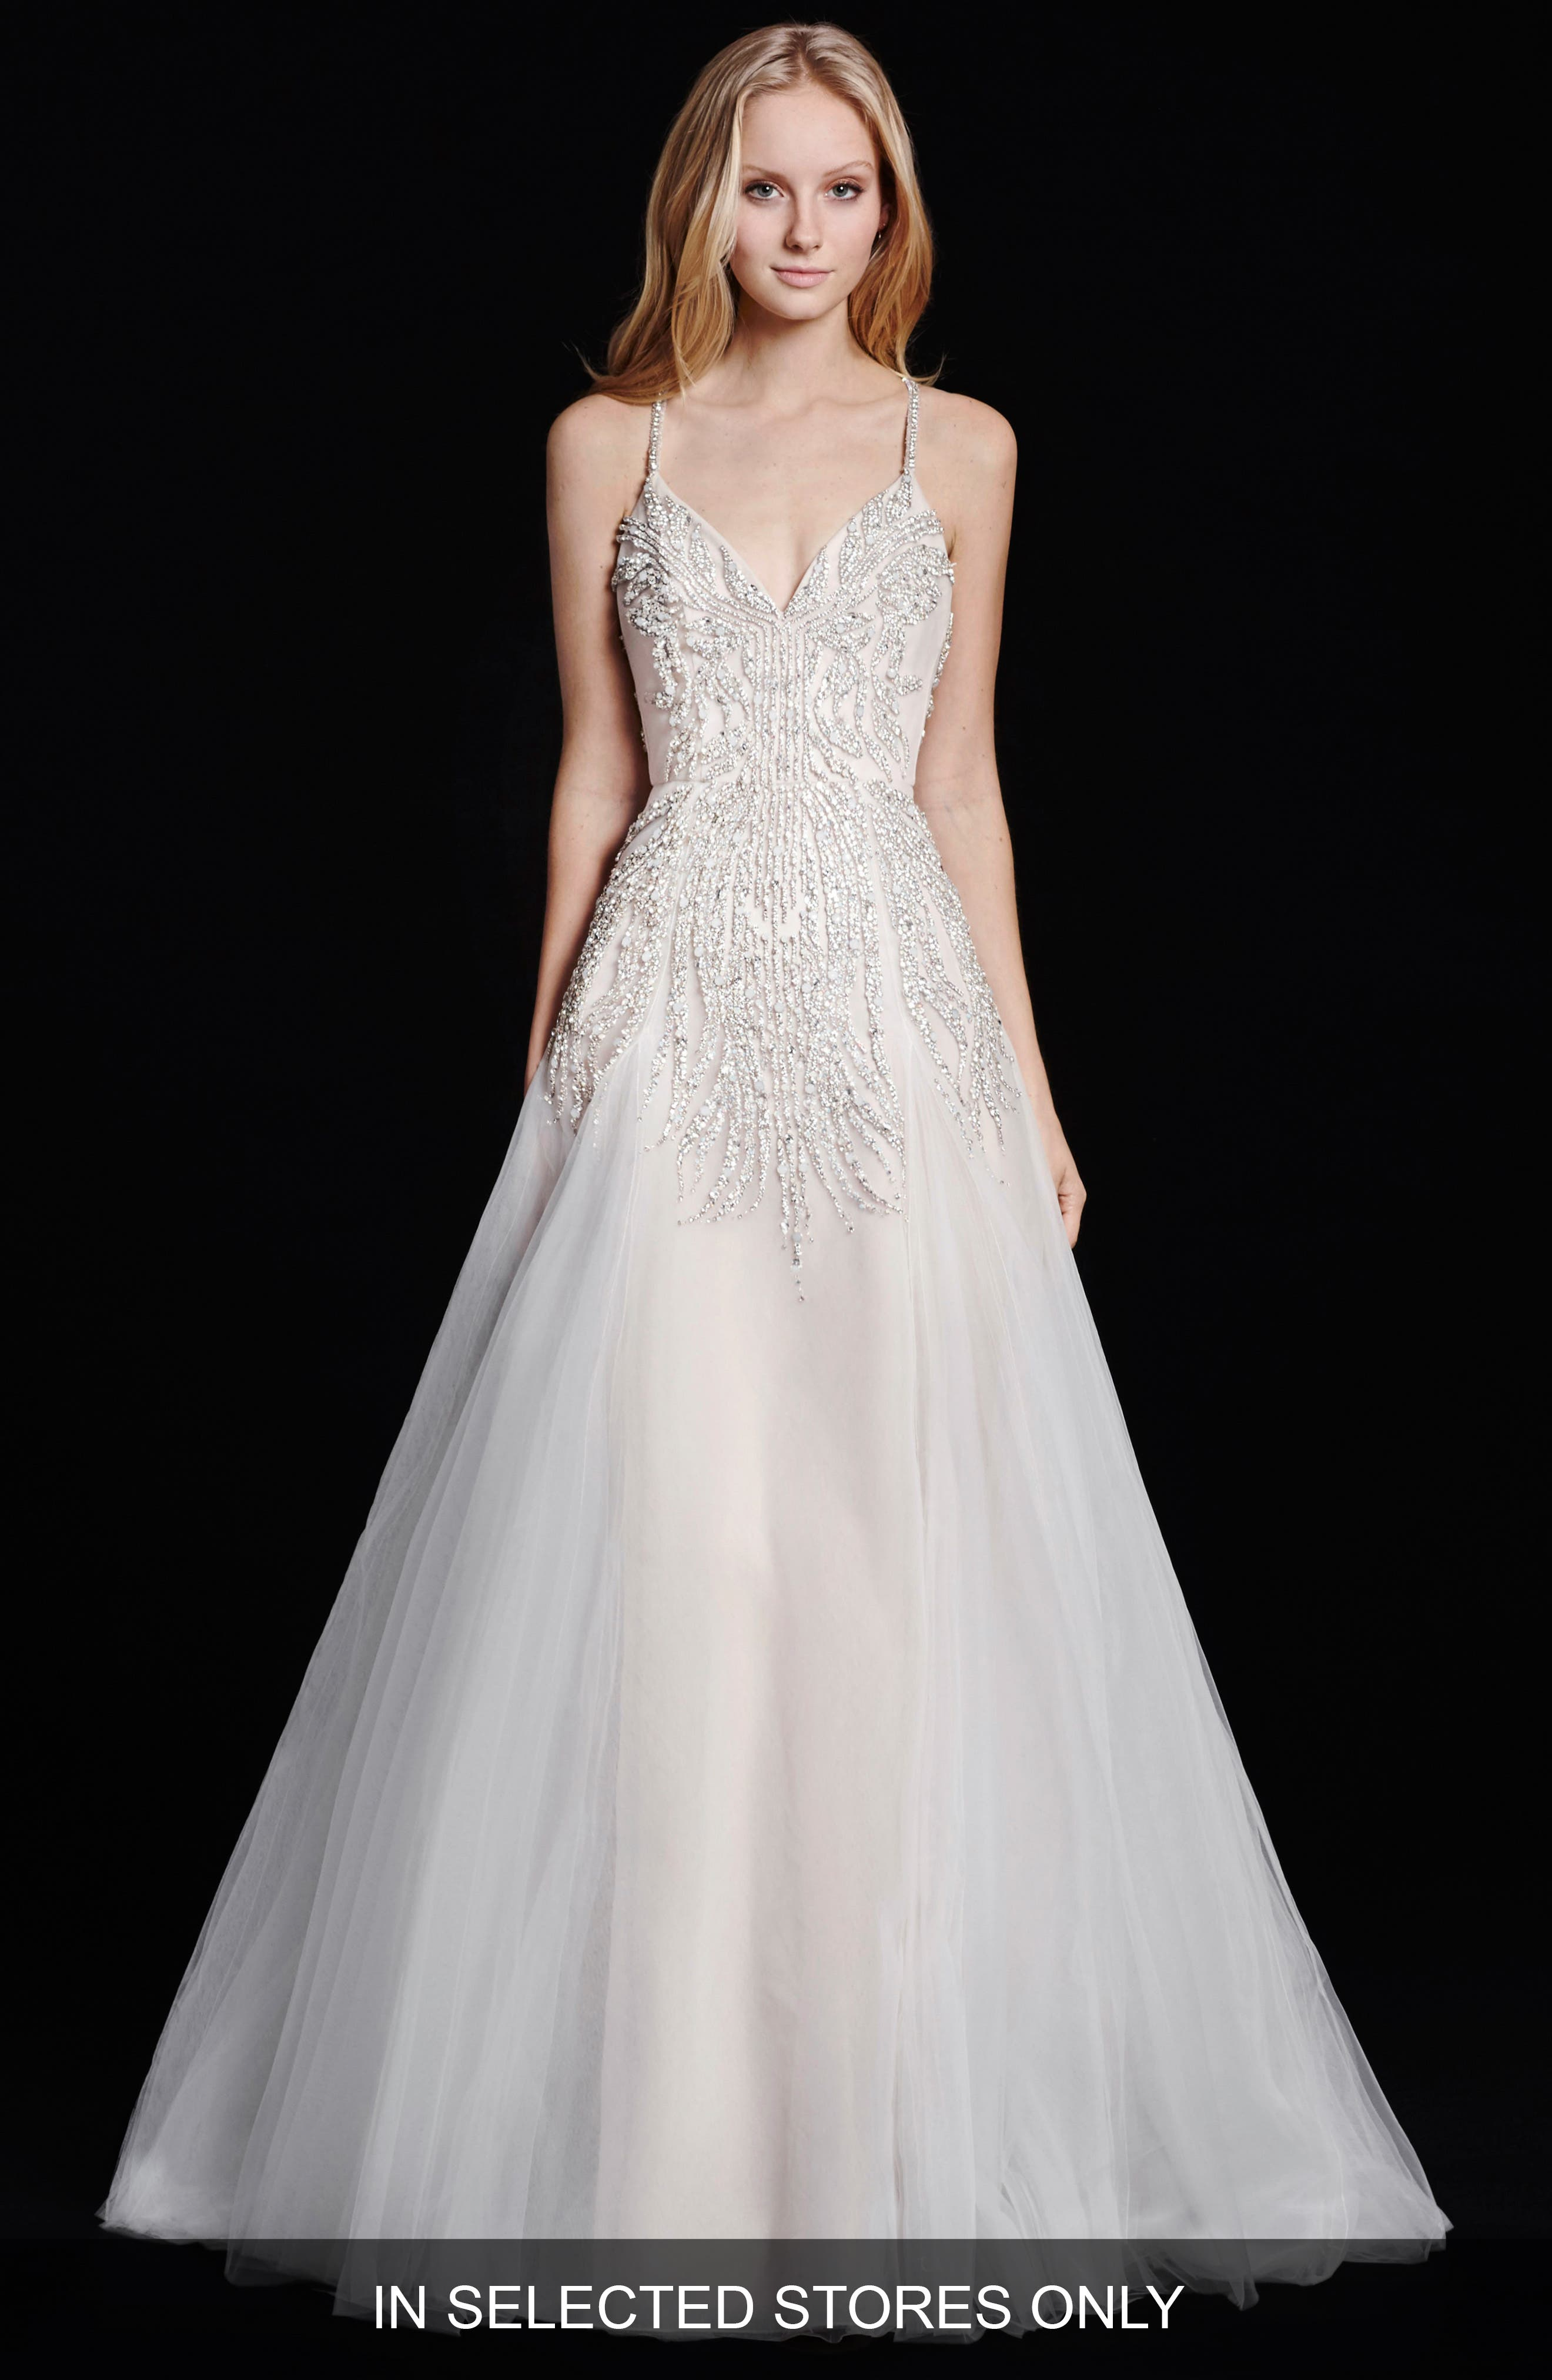 Alternate Image 1 Selected - Hayley Paige Comet Embellished Bodice A-Line Tulle Gown